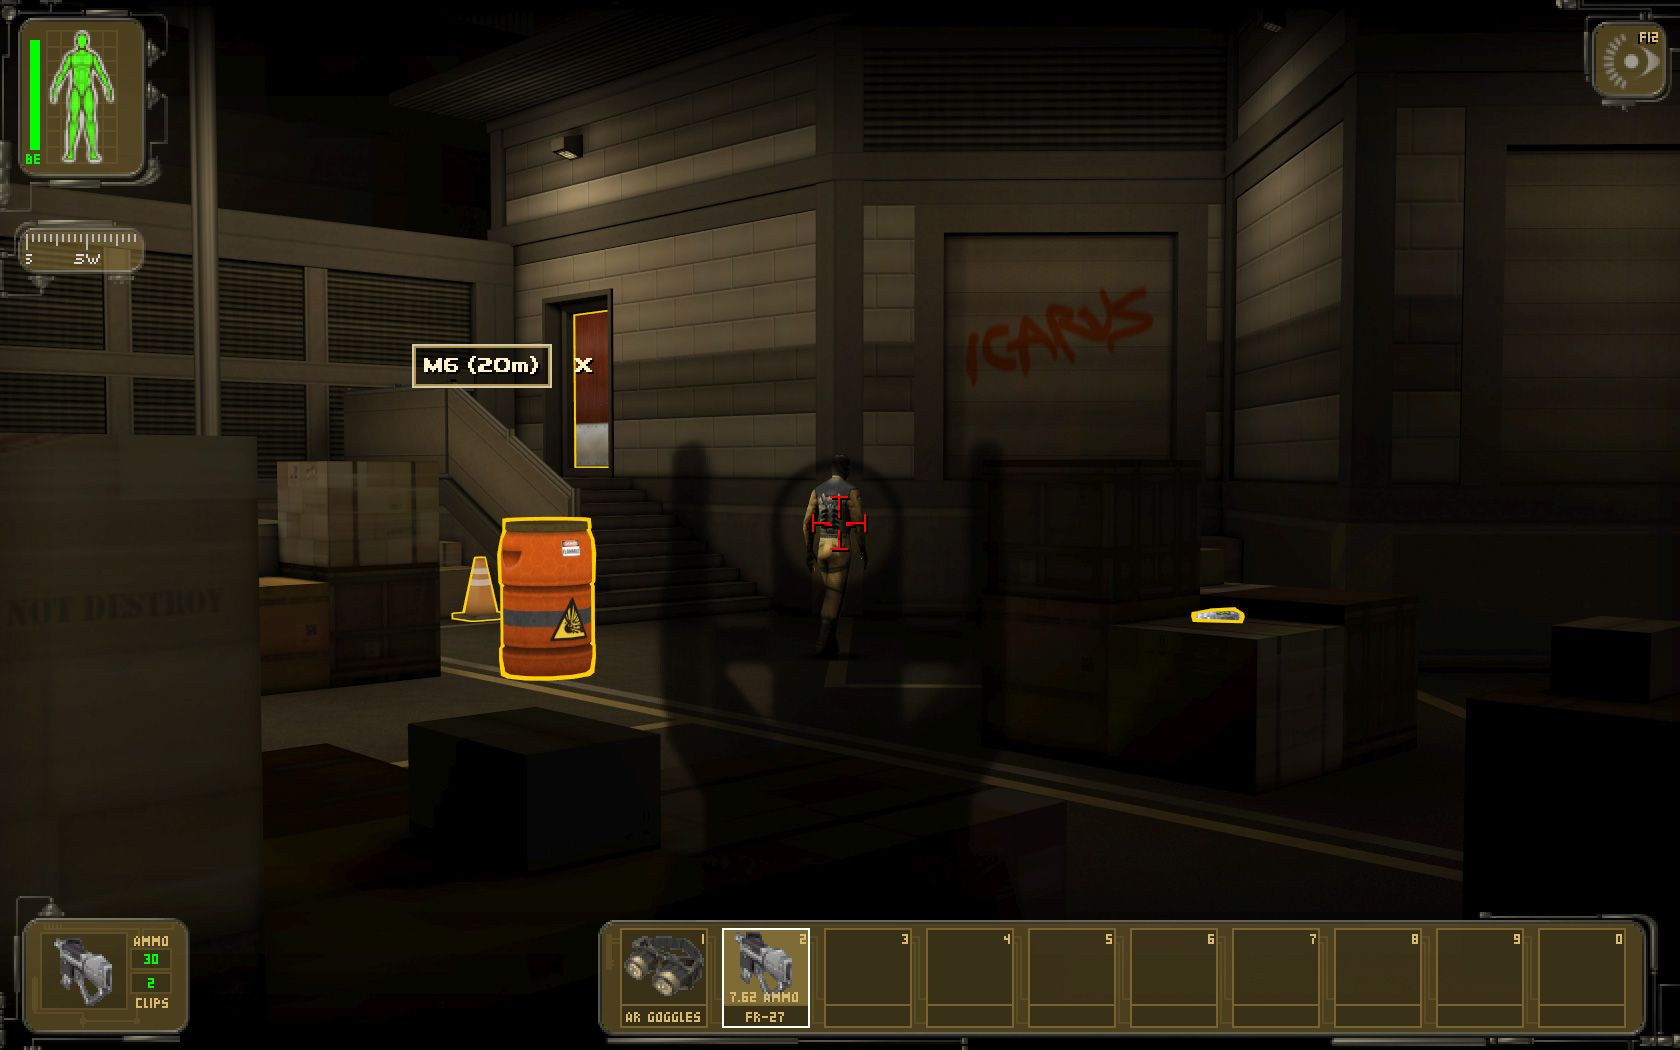 MOD Hardcore Revival for Deus Ex Human Revolution. The Hardcore Revival Mod for Deus Ex Human Revolution changes : - What items the merchants are selling, - The price, size and stacking values of the items, - What augmentations are enabled or disabled by default, - The weapons' power.